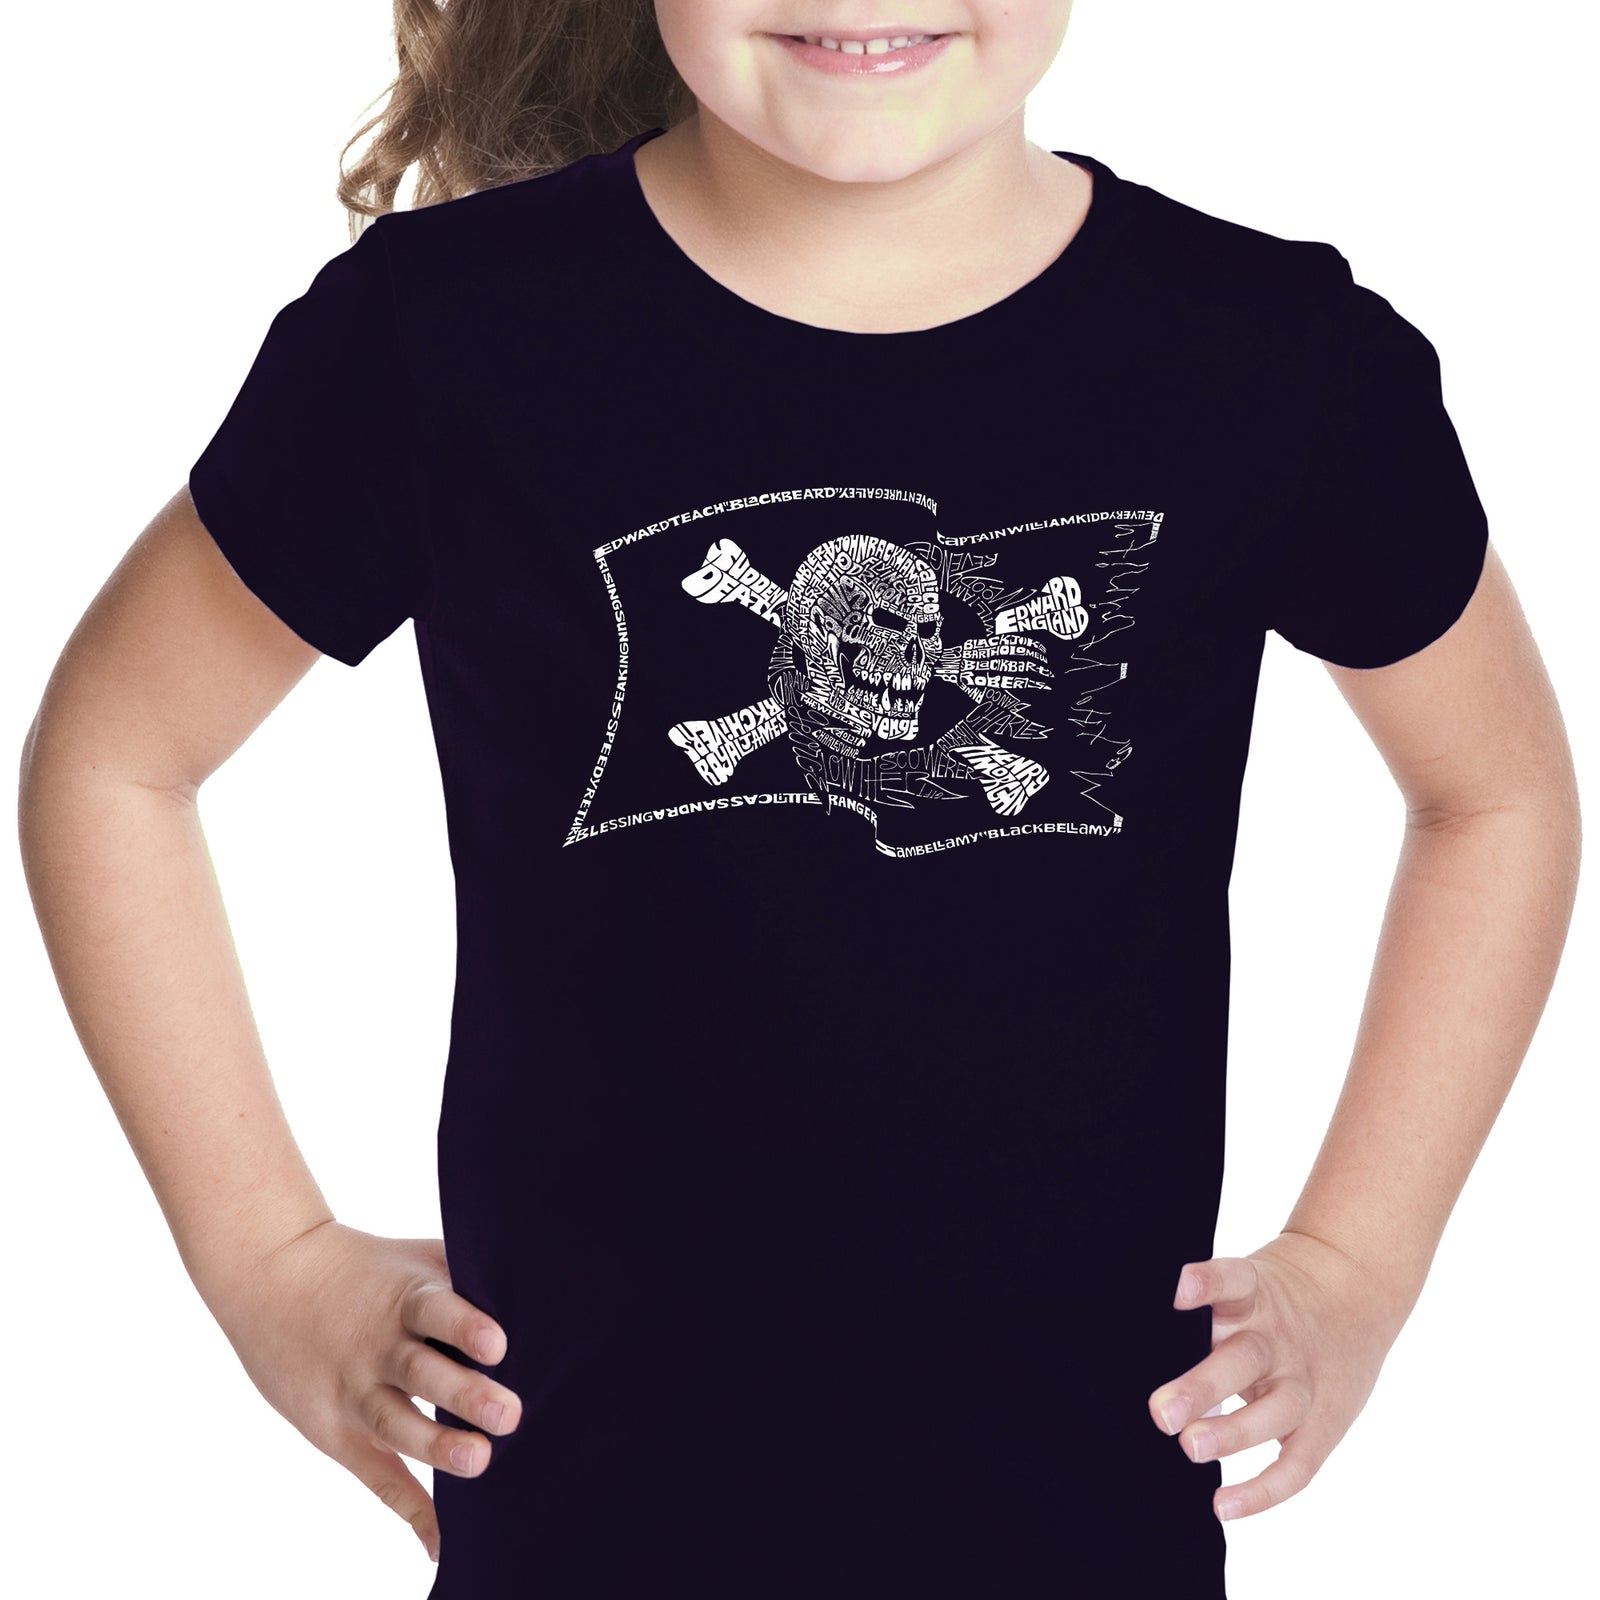 Girl's T-shirt - FAMOUS PIRATE CAPTAINS AND SHIPS